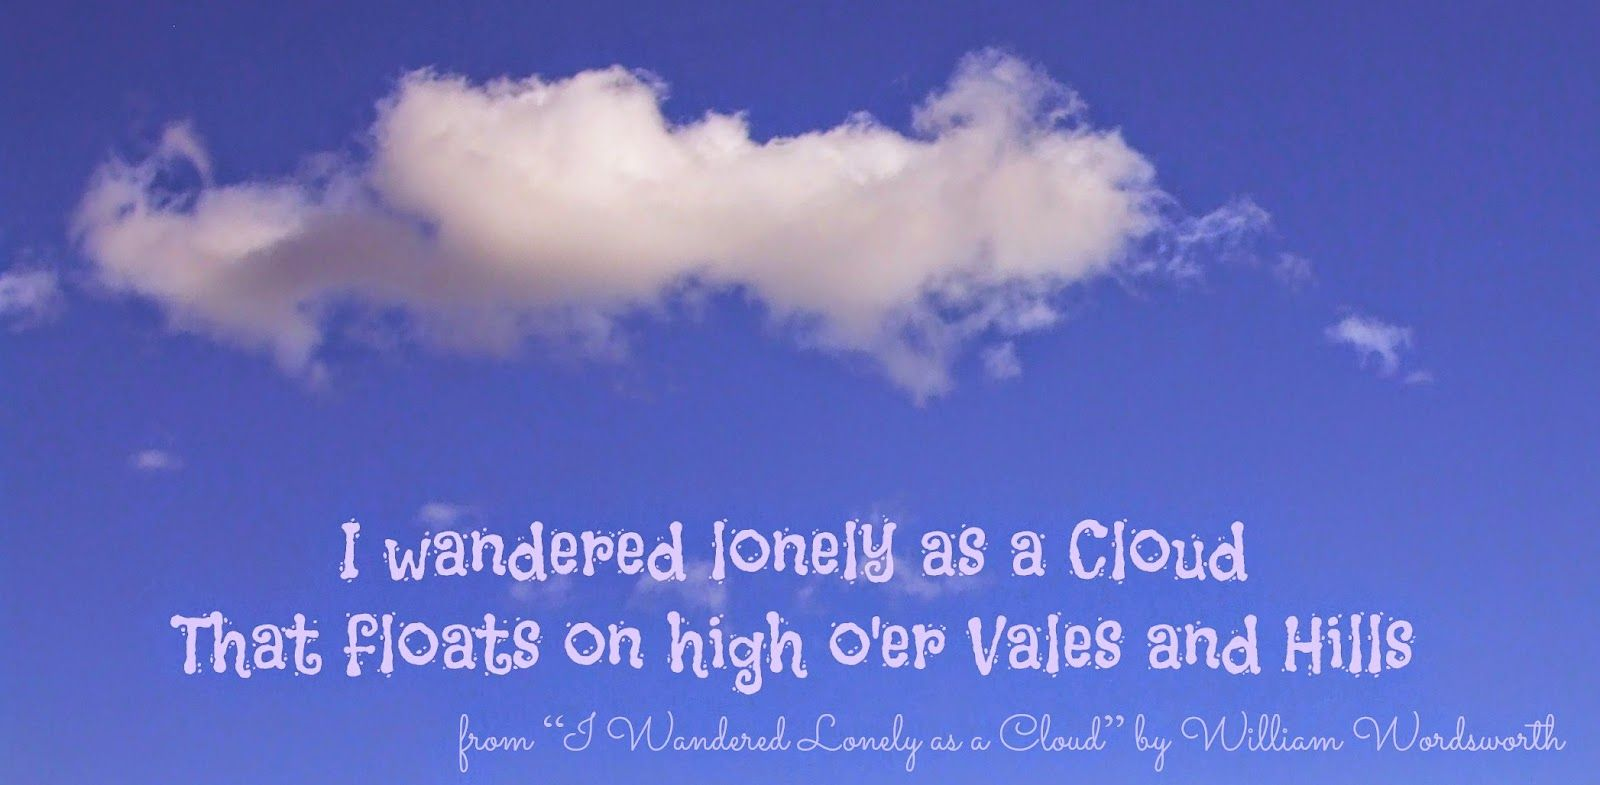 Muzzlebo Flipstork: Lonely as a Cloud